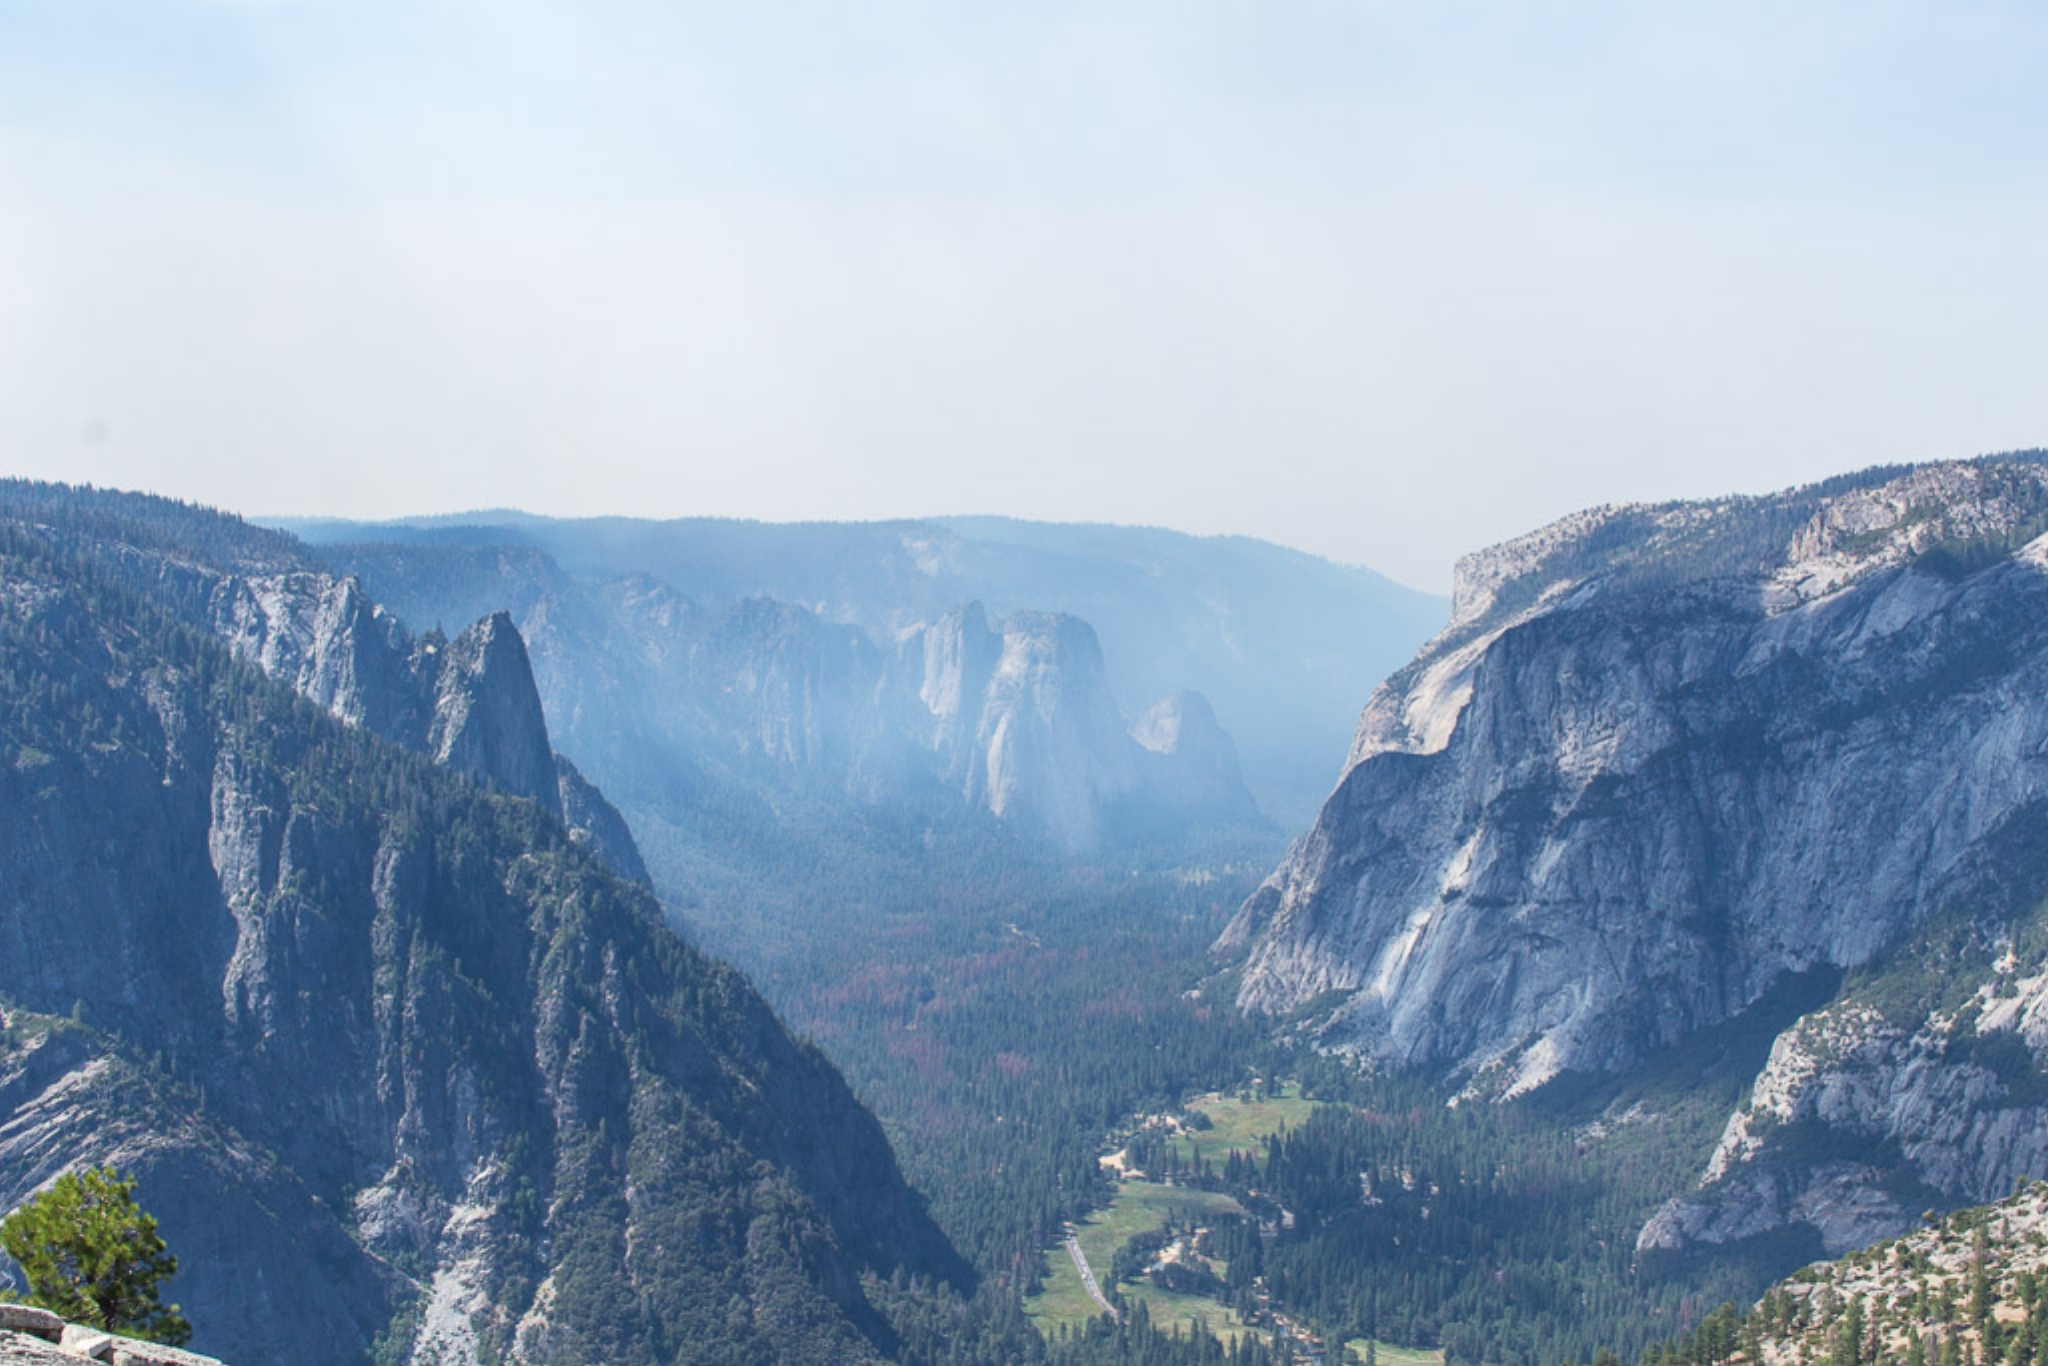 Views into Yosemite Valley from the top of North Dome.